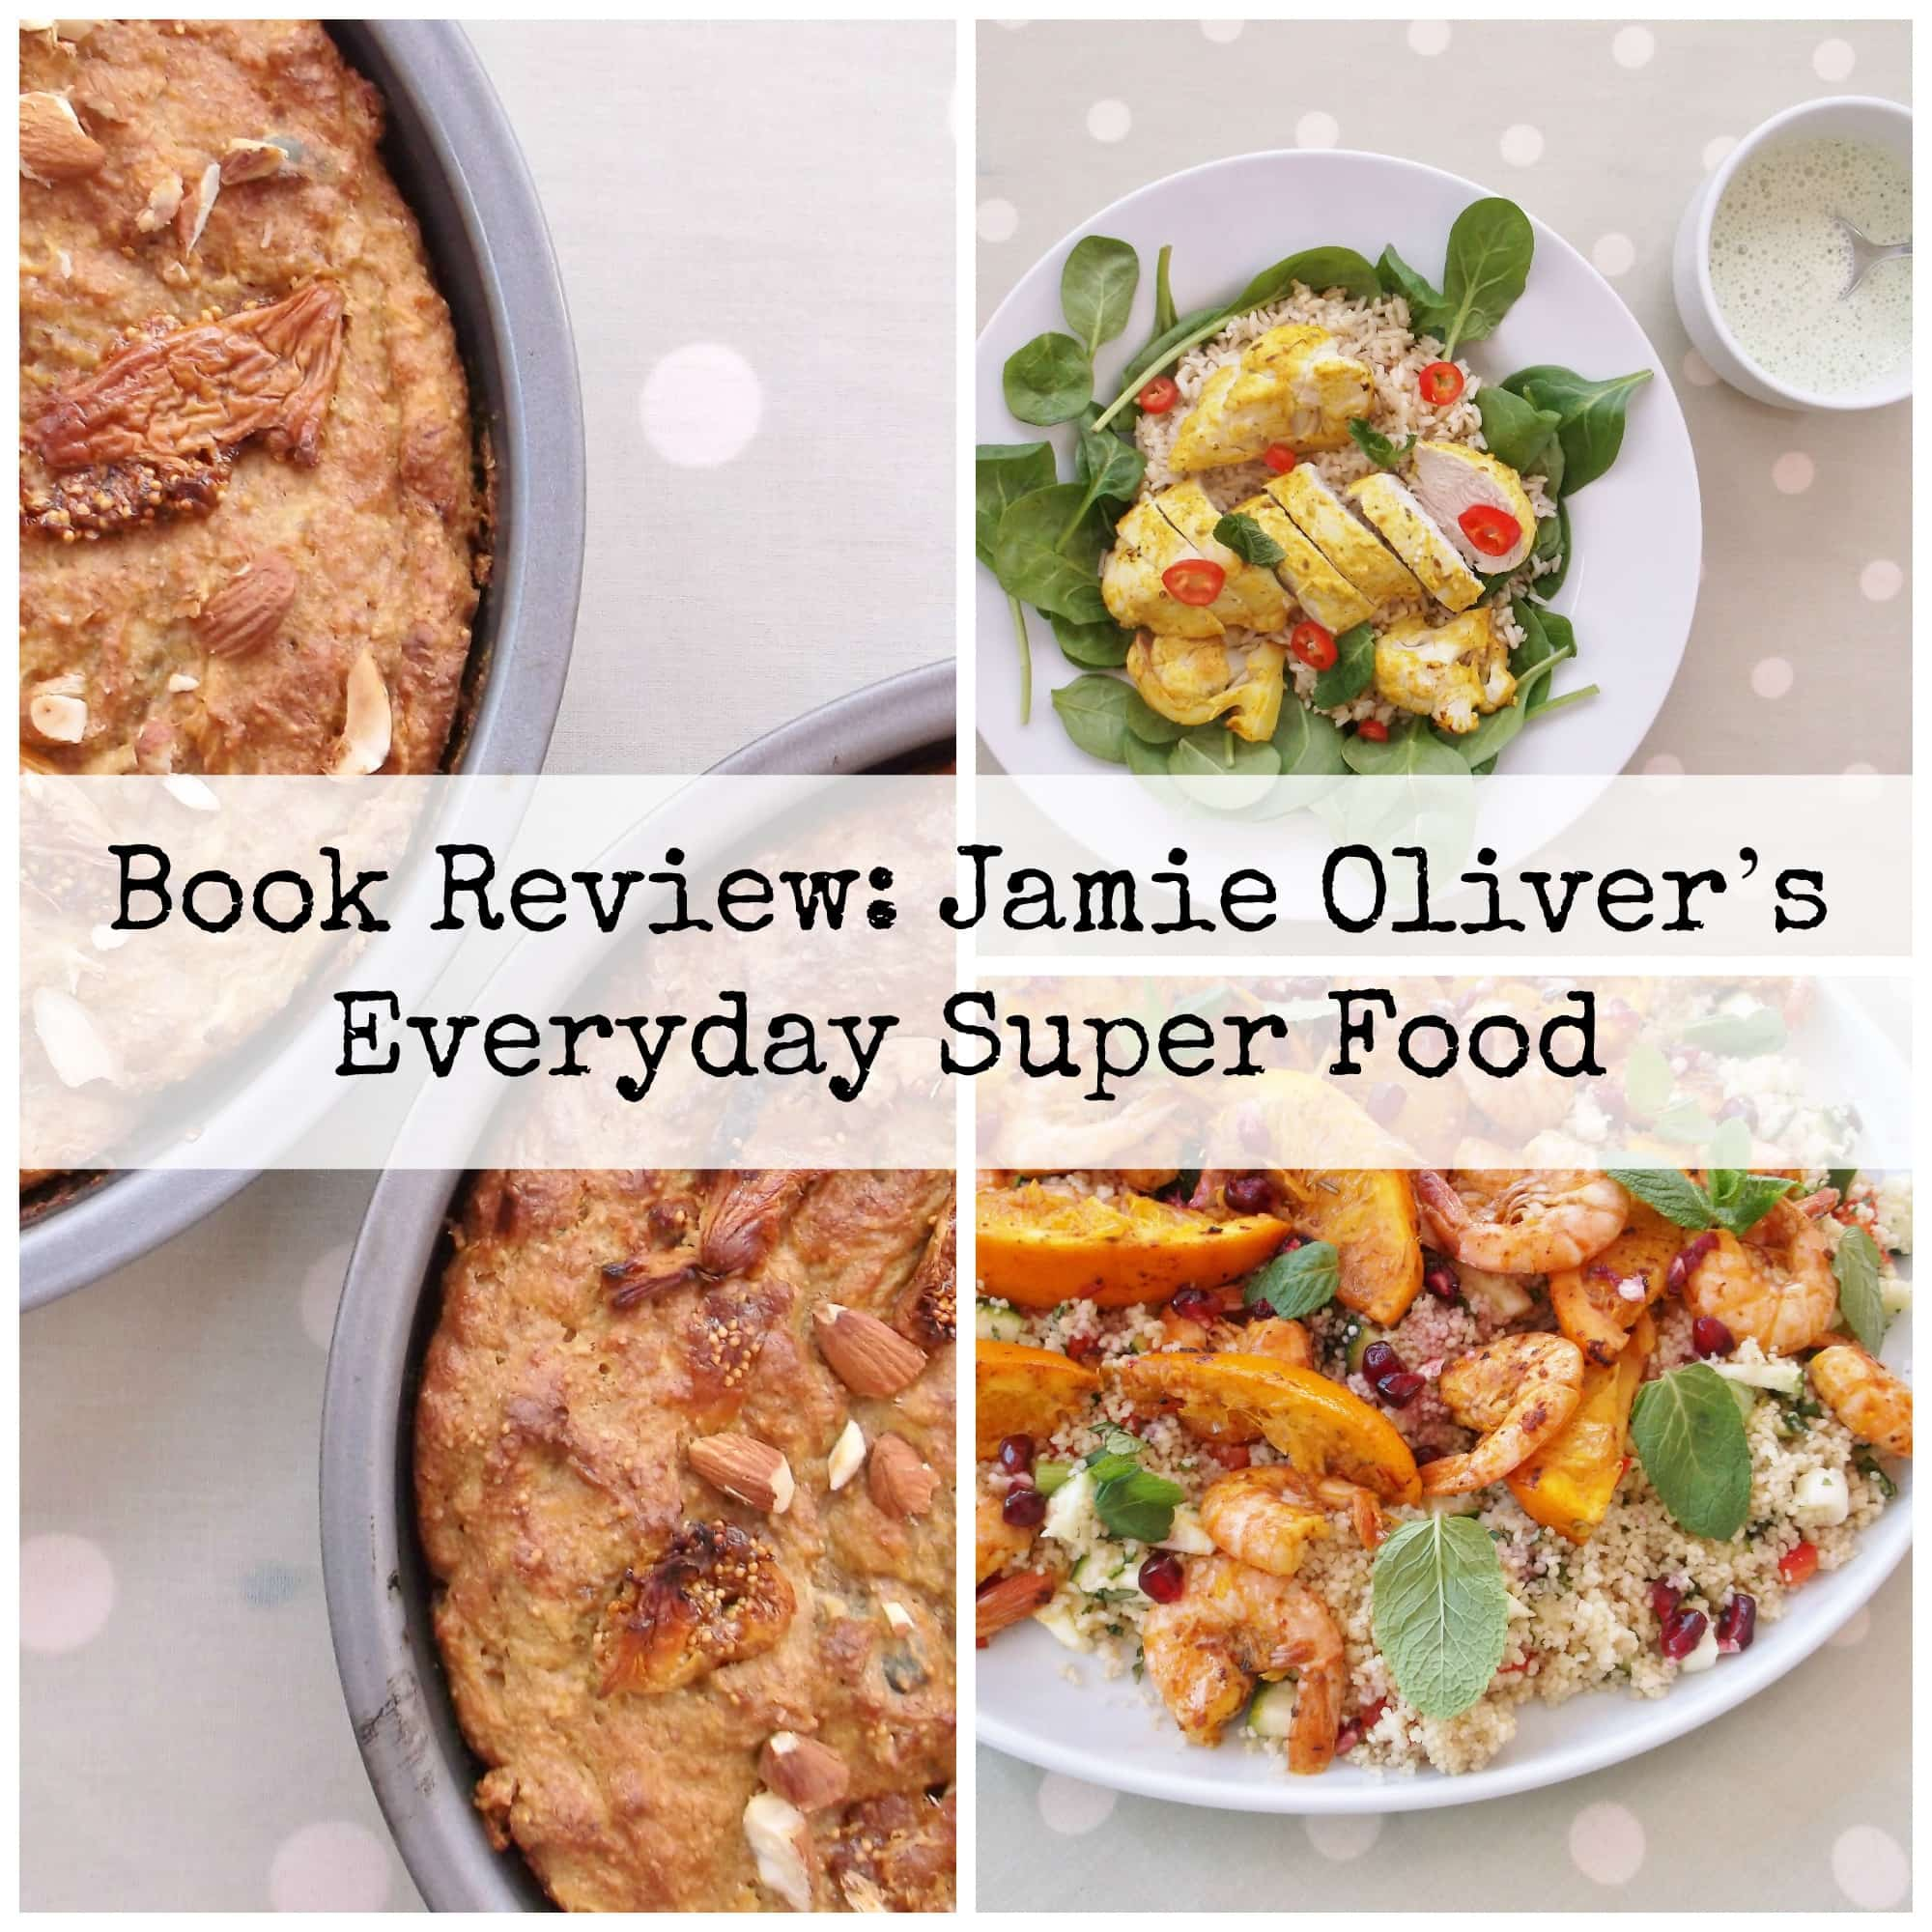 Review of jamie olivers everyday super food easy peasy foodie jamie olivers everyday super food book review forumfinder Gallery